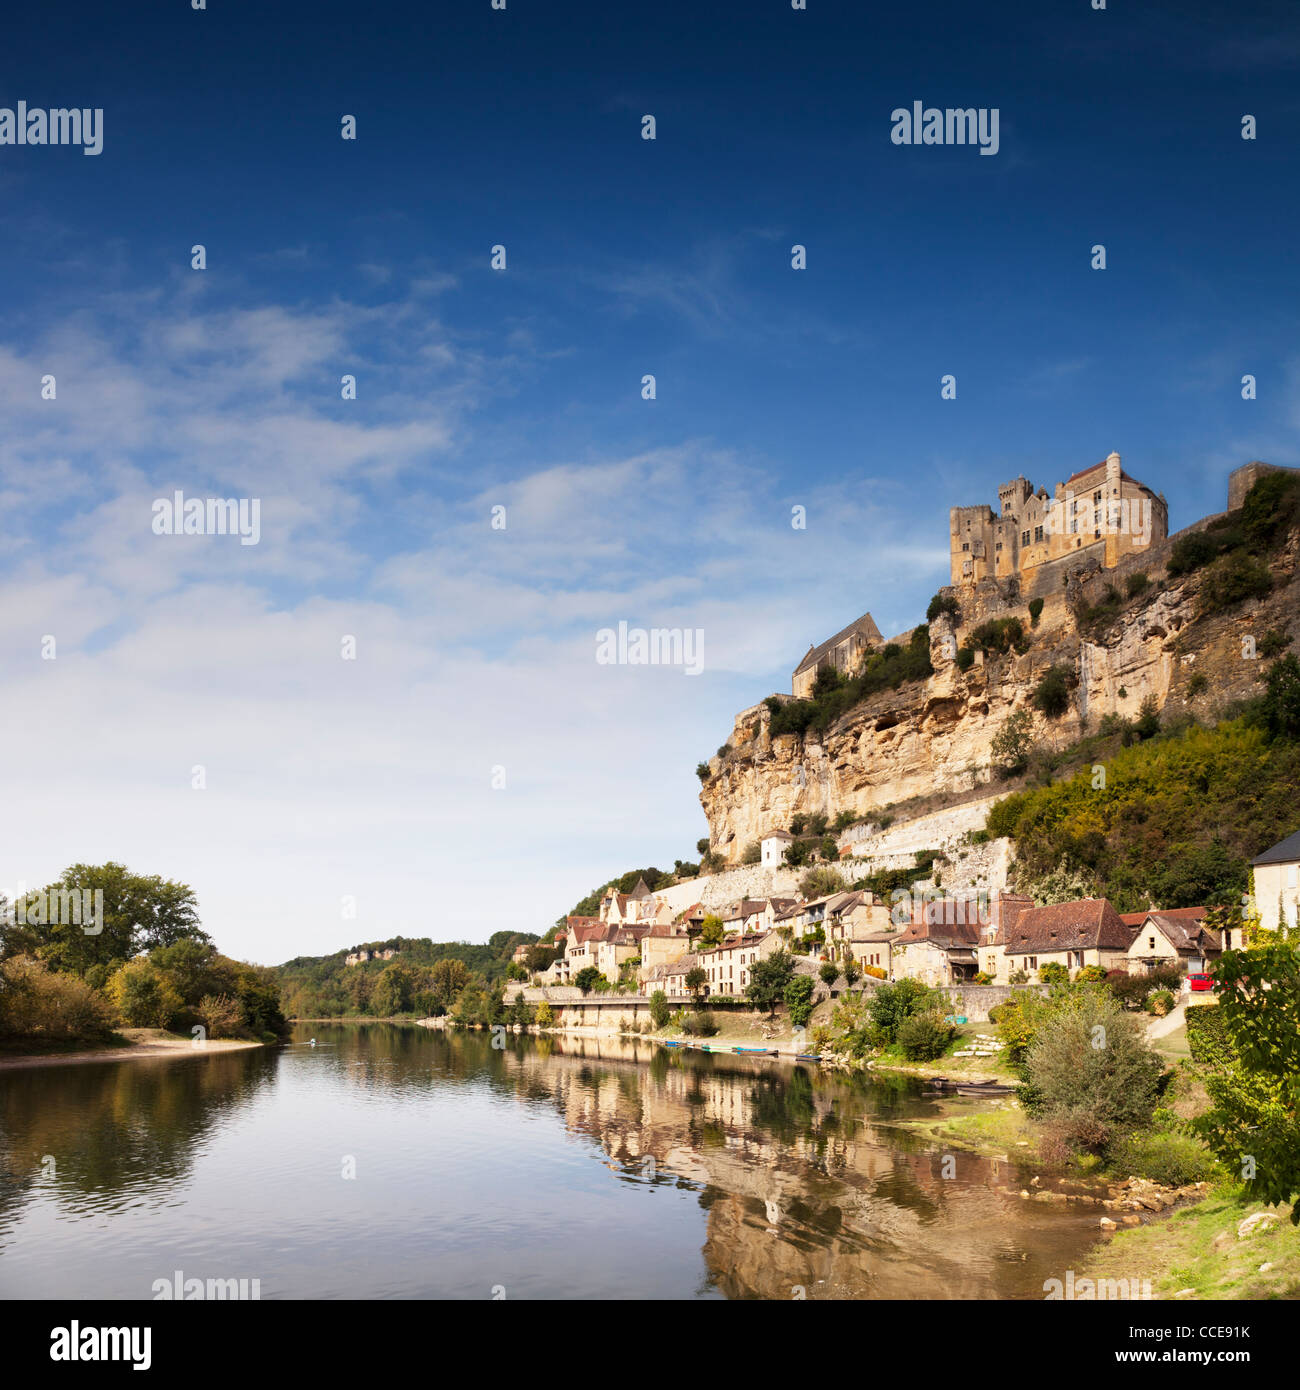 Chateau de Beynac, Beynac et Cazenac, perched on its rock above the River Dordogne in Haute-Vienne, Limousin, France. - Stock Image